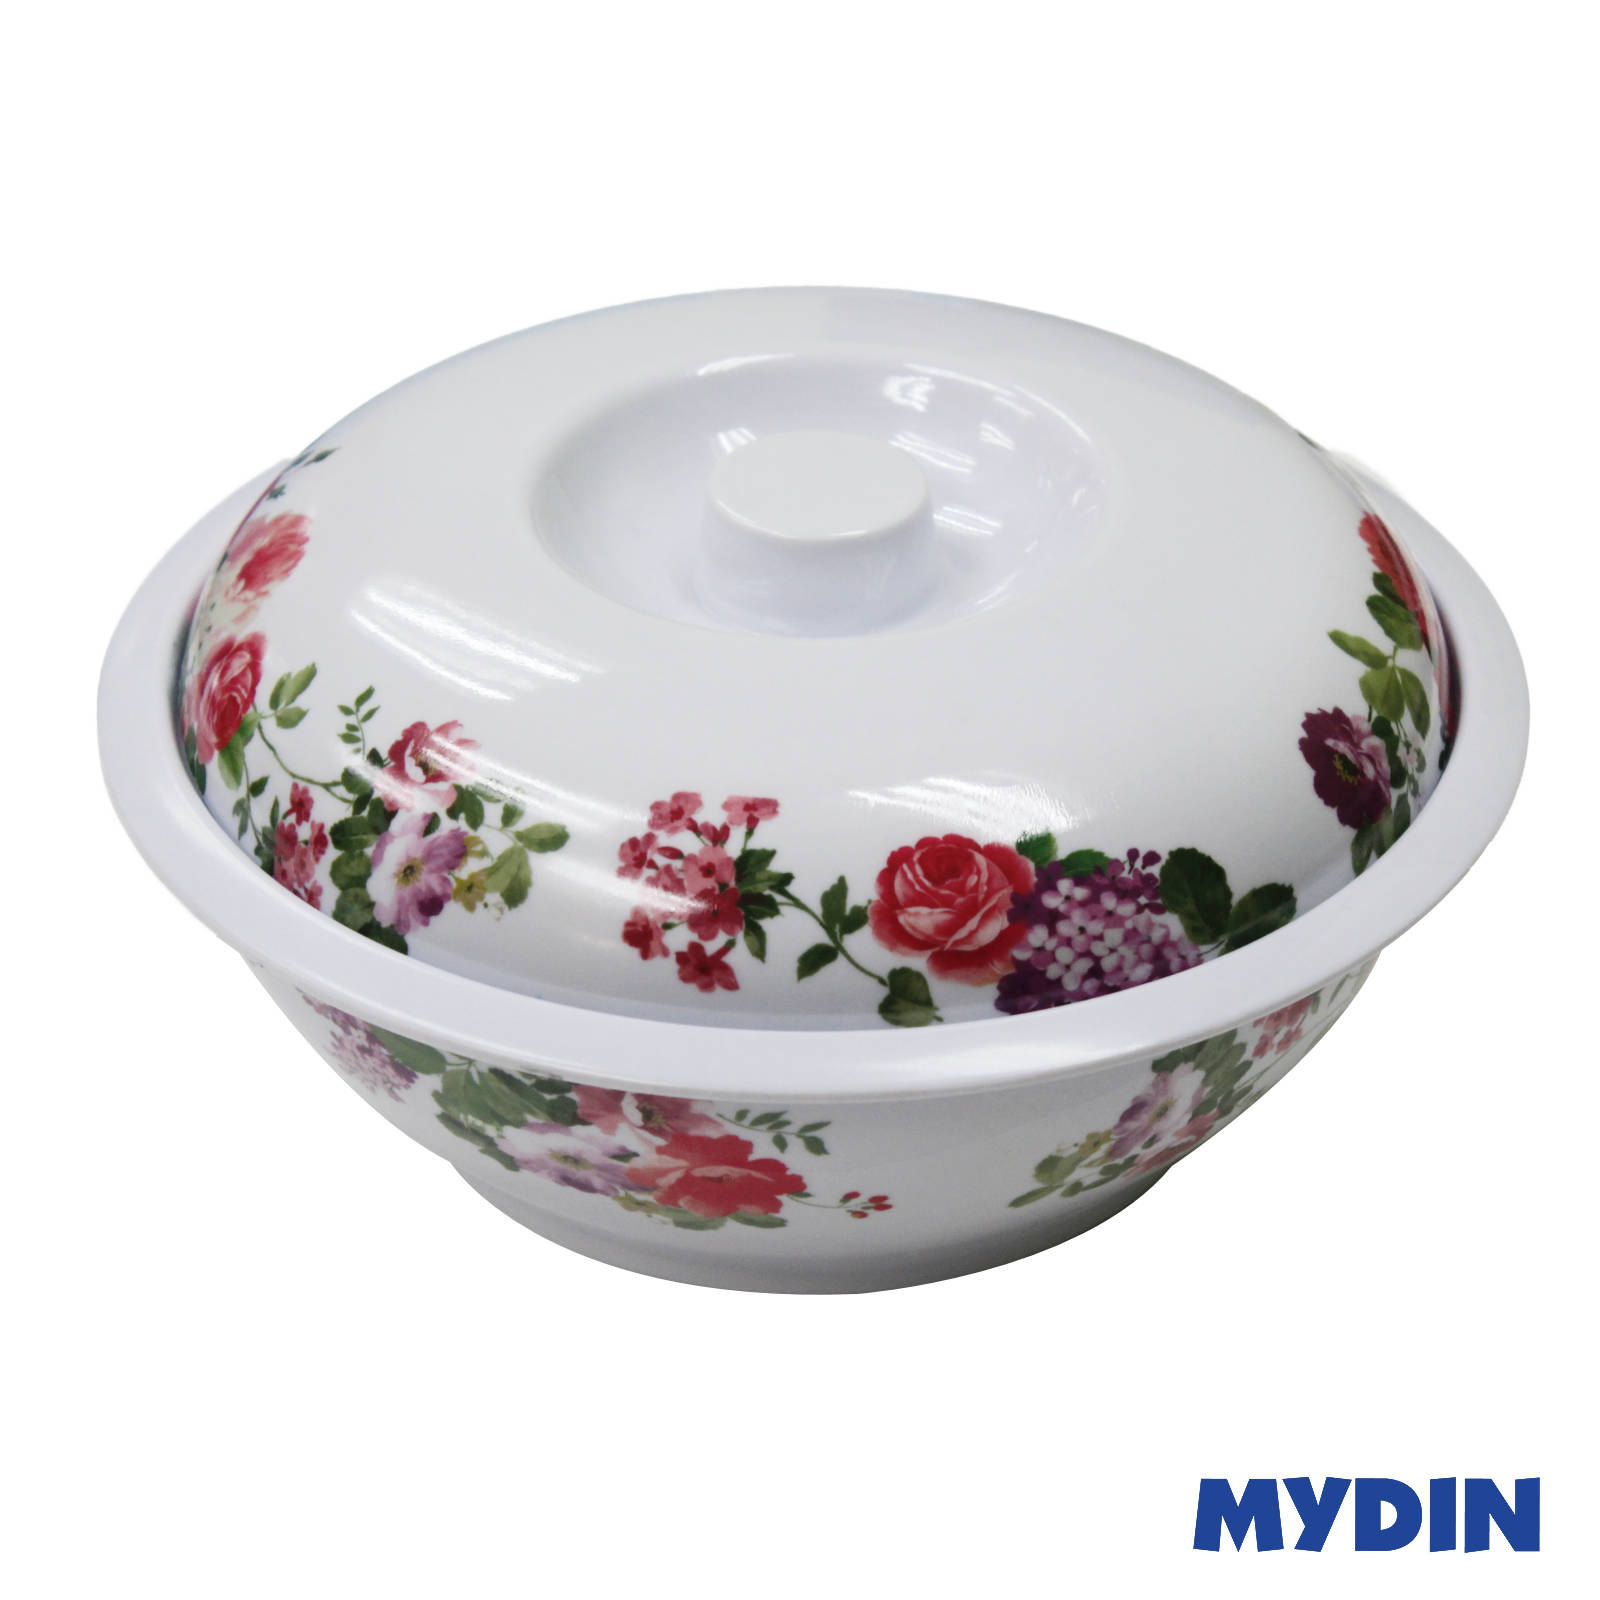 My Home Melamine Bowl With Lid (10'') FWR CW-BWL-10